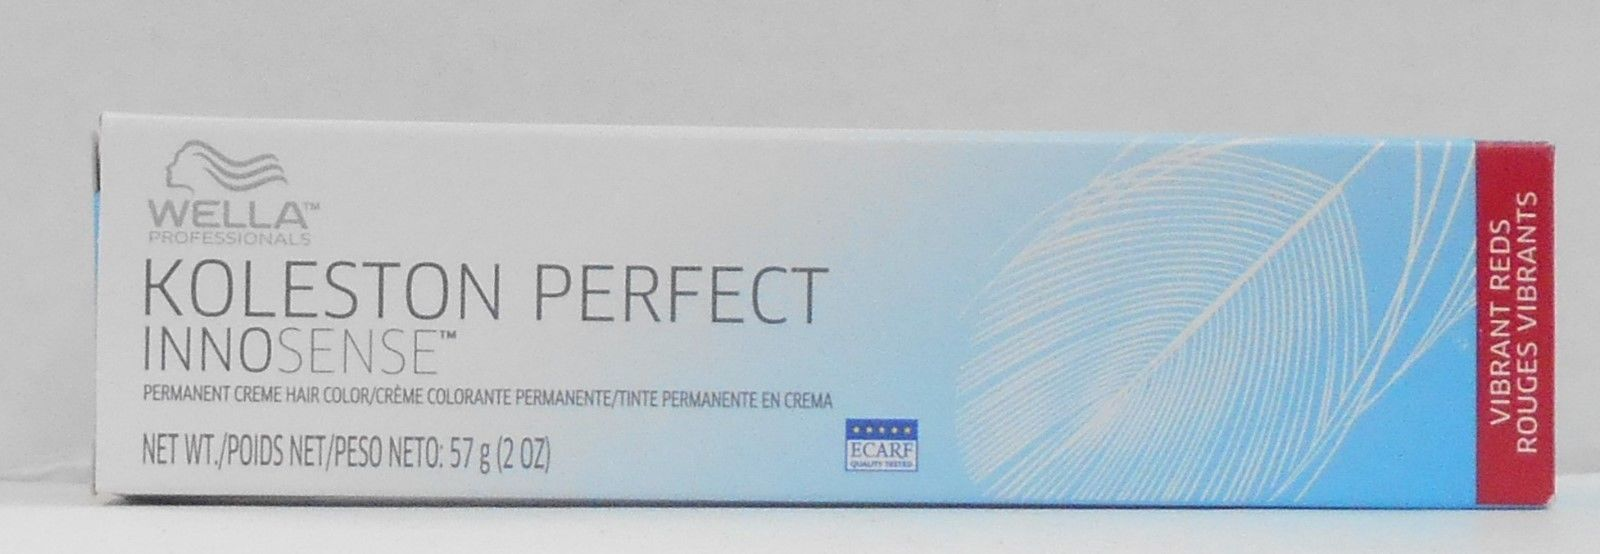 ba8a3fd3b74f WELLA Professionals Koleston Perfect INNOSENSE Permanent Hair Color ~ 2 fl  oz!!